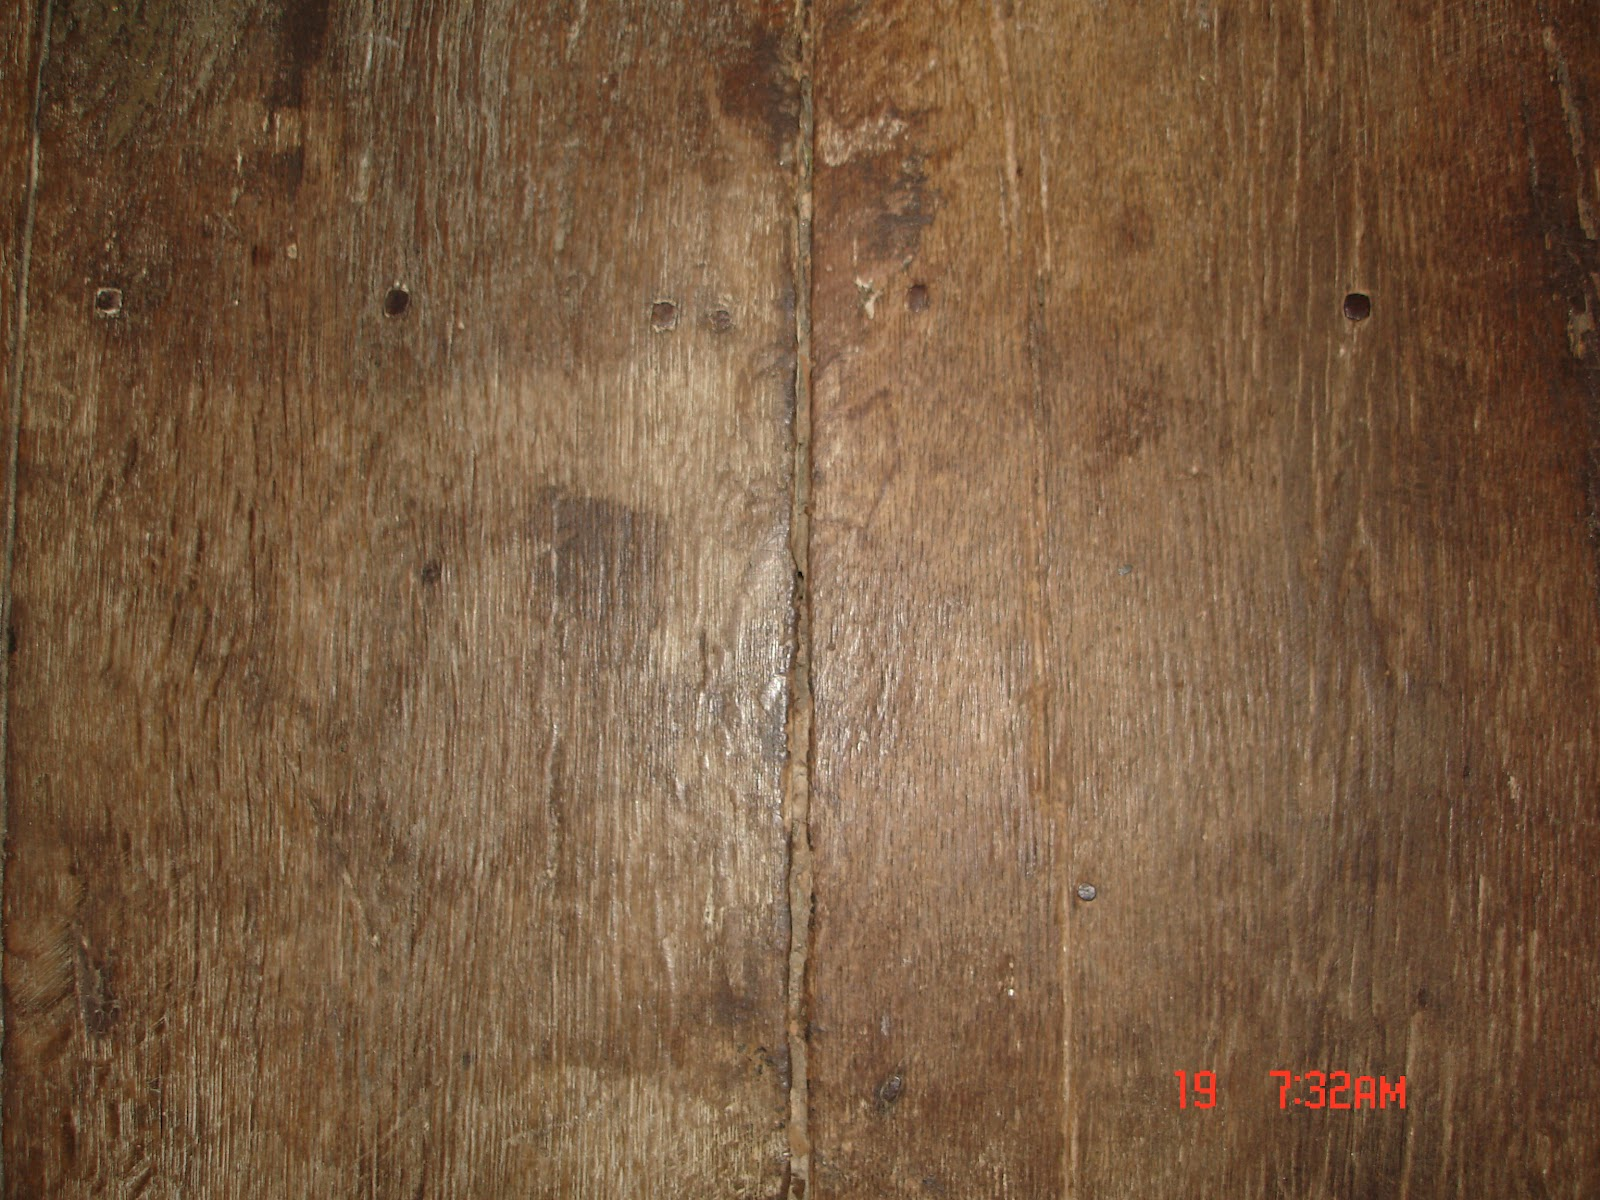 Floor With Milk Paint Now For The Close Up You Can Tell Wood Is Very Worn And Well Loved Definitely Time A Makeover